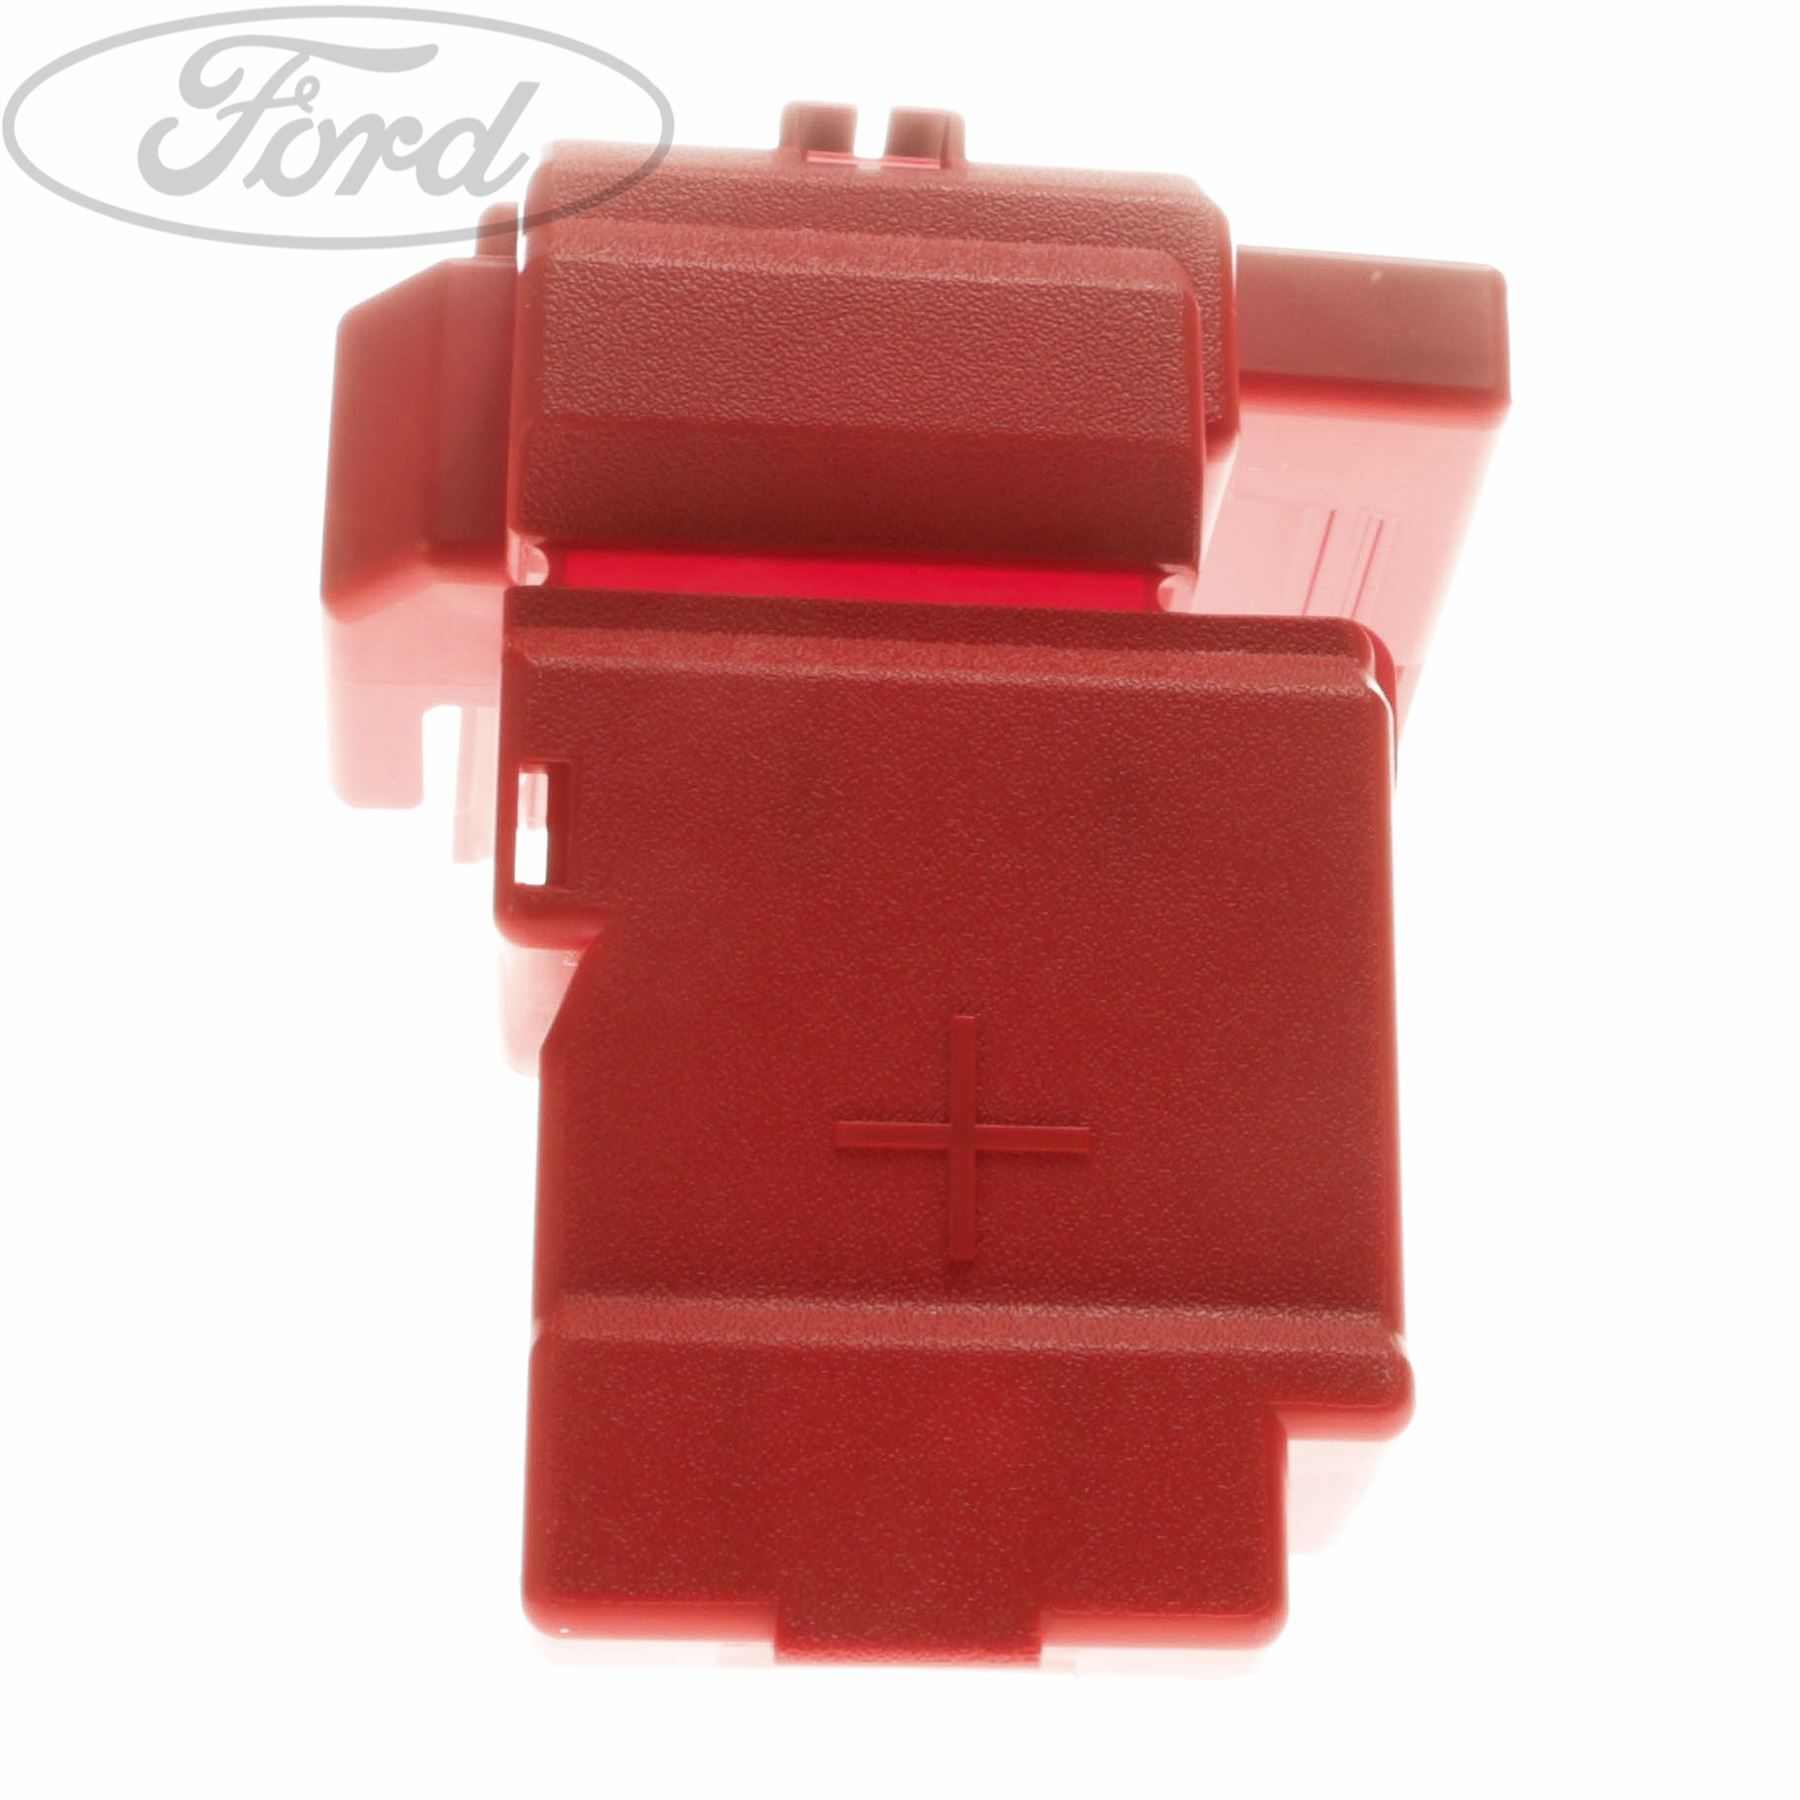 Genuine Ford Fiesta Mk7 Fuse Box Cover 1832217 Ebay Diagram